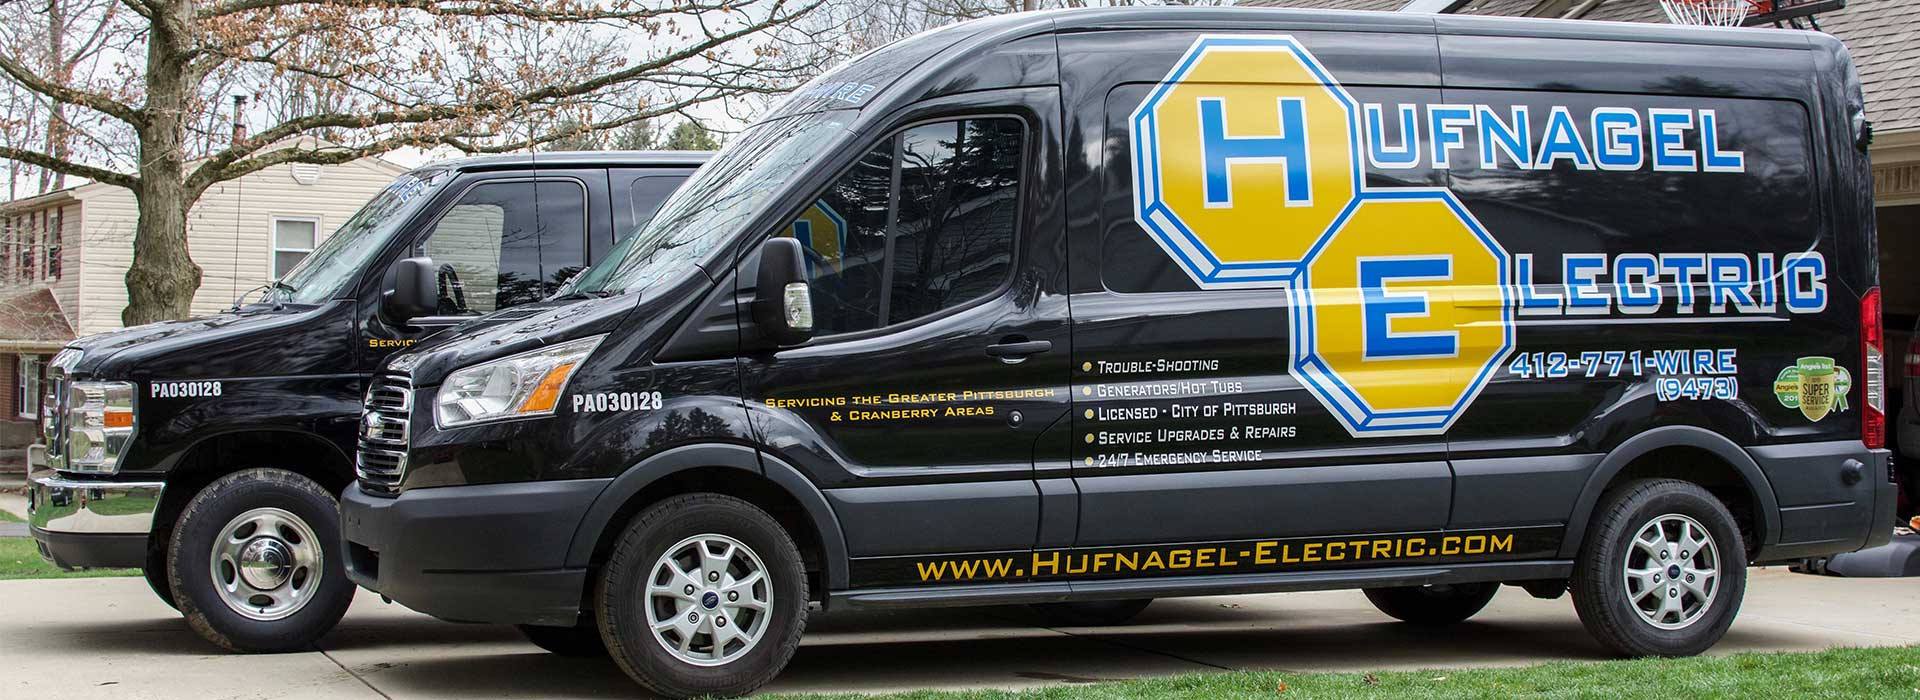 Pittsburgh Electrical Services